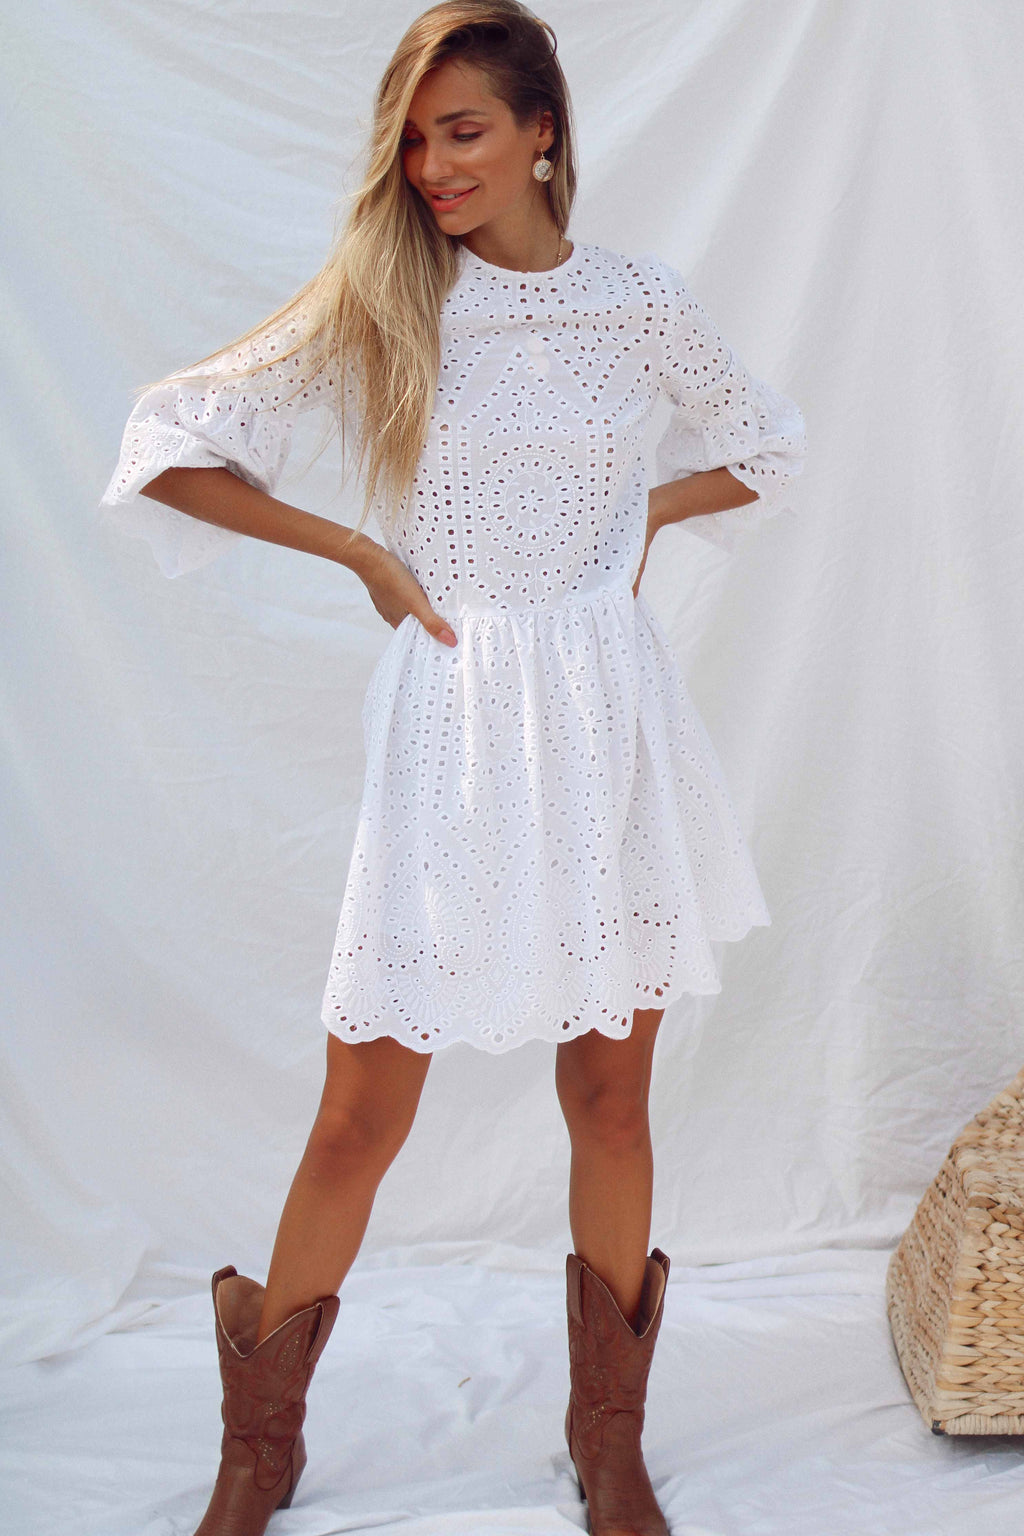 ROYA DRESS IN WHITE | Women's Online Shopping | CHICLEFRIQUE  (2072086184025)